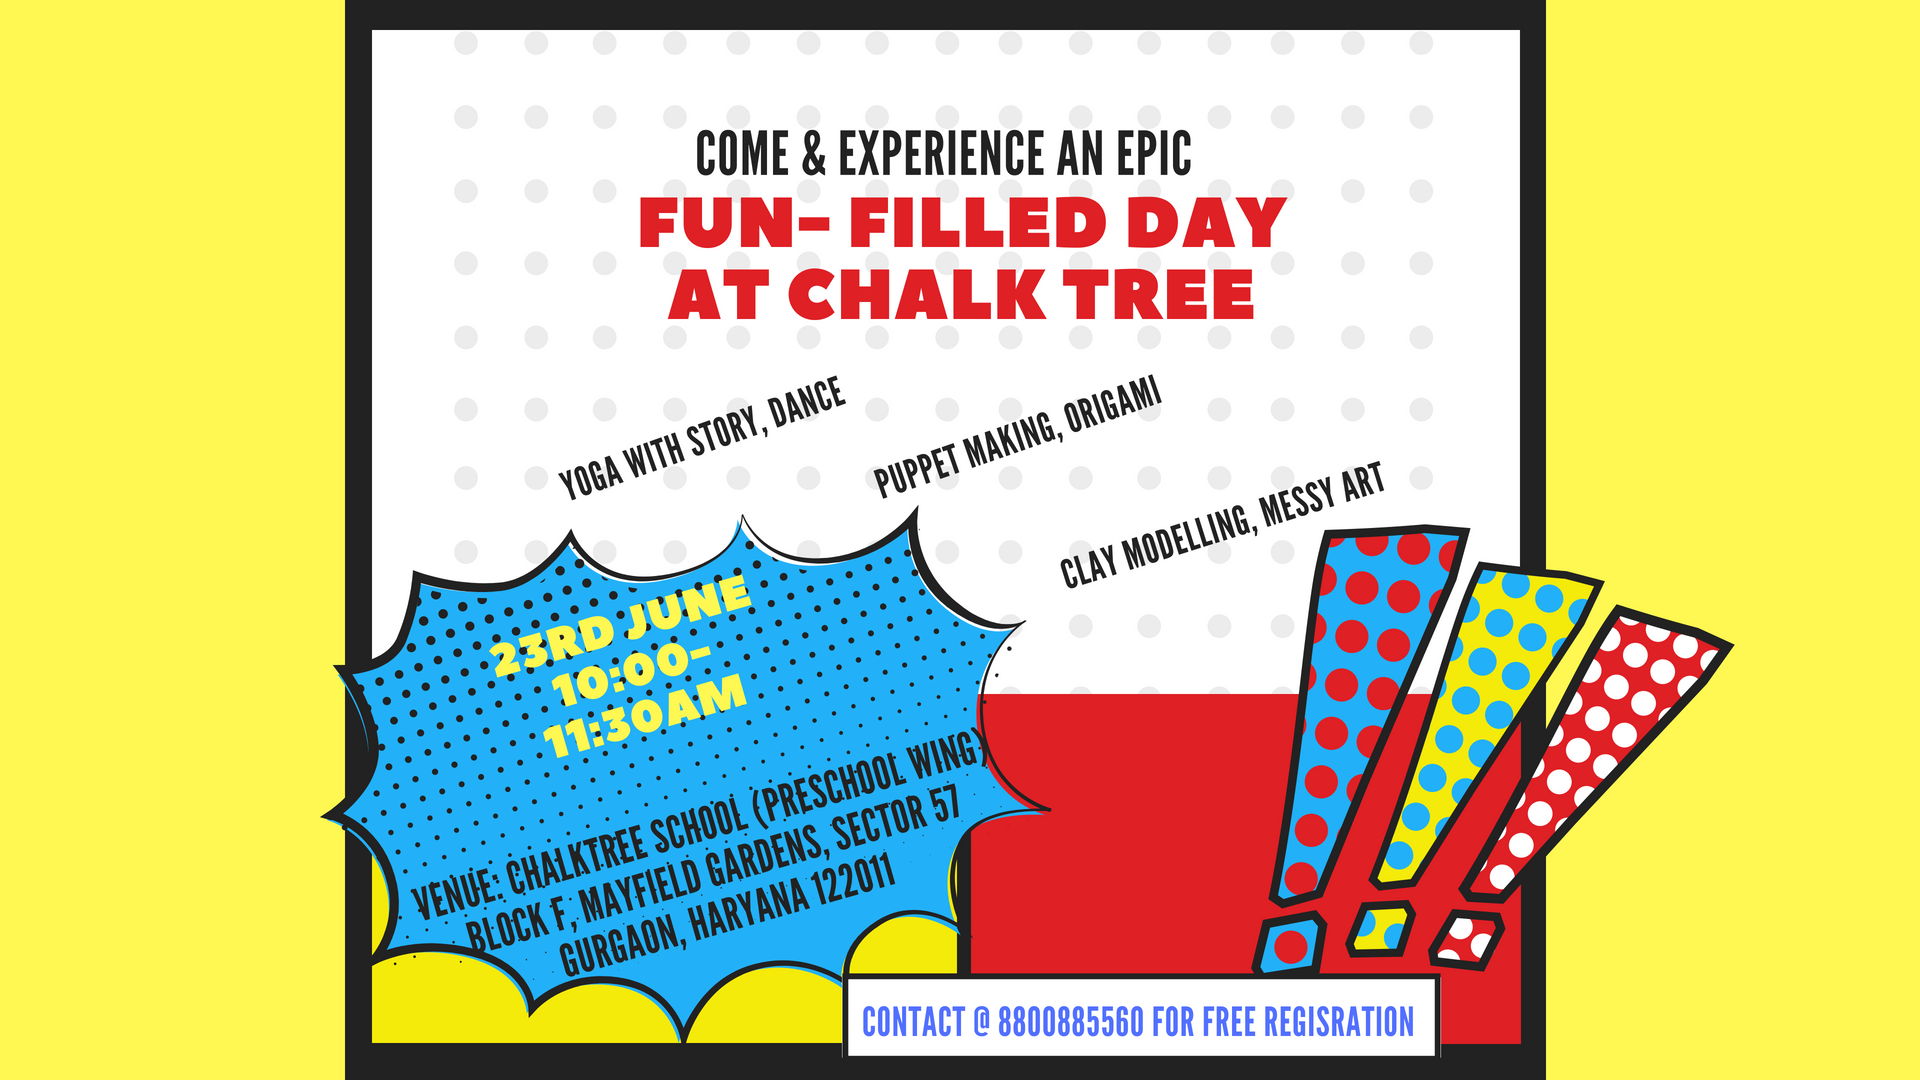 An Epic Fun-filled day at Chalk Tree School